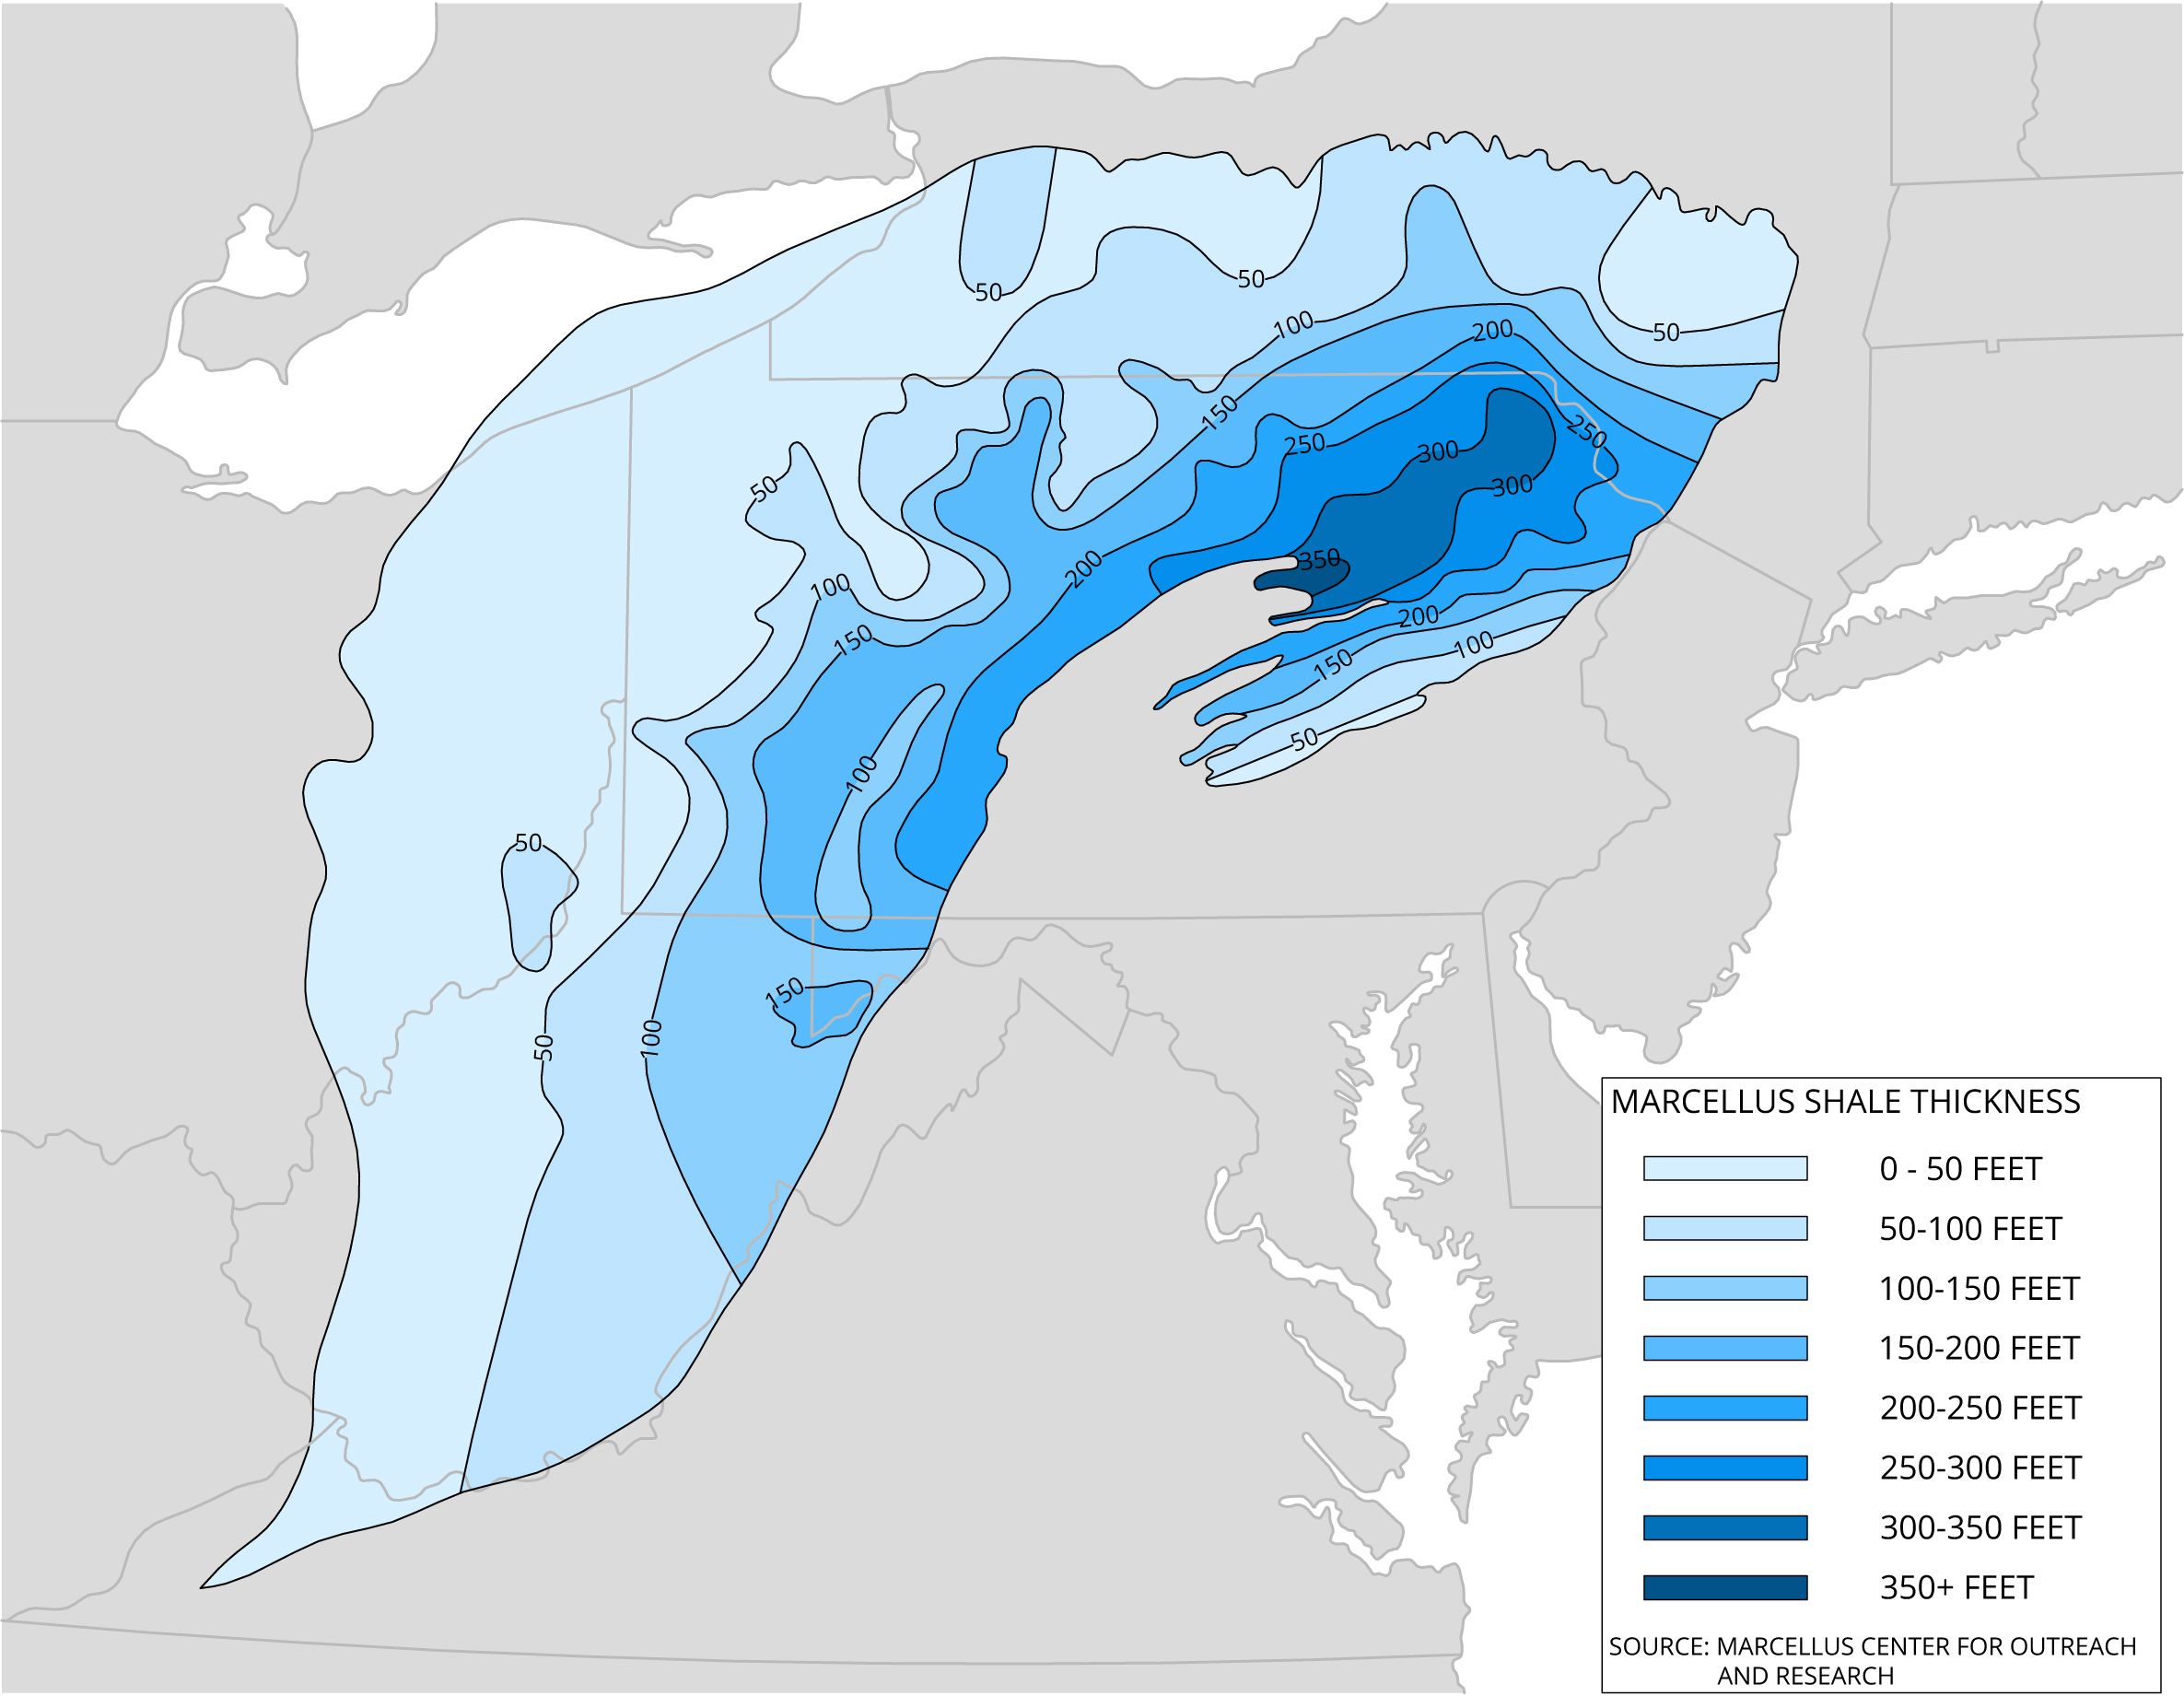 Marcellus Shale Thickness